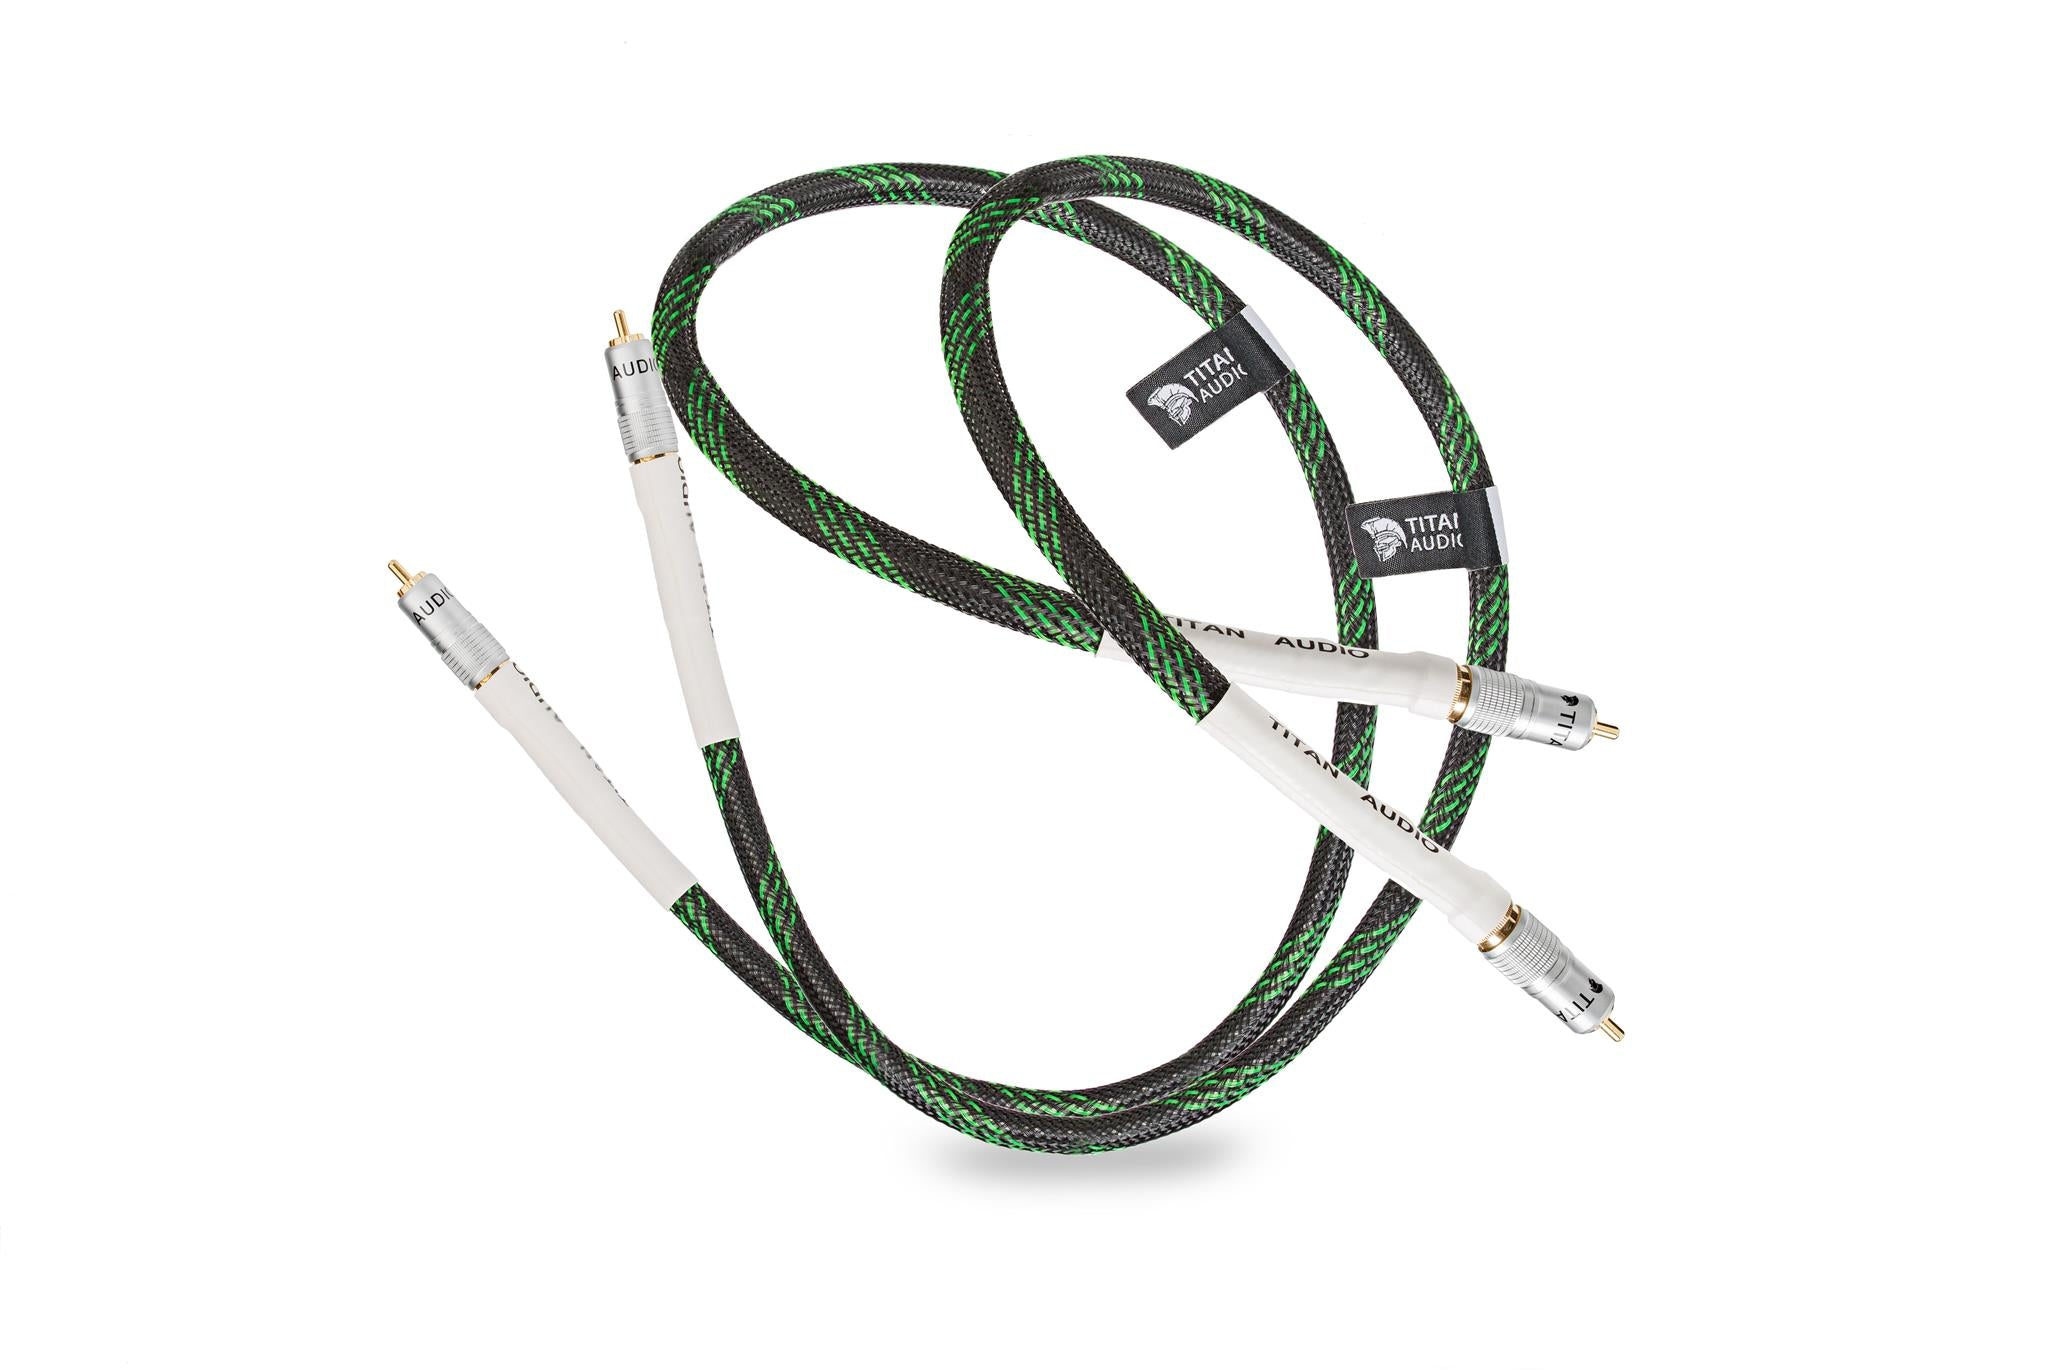 Titan Audio Styx RCA Cable | AUDIONATION